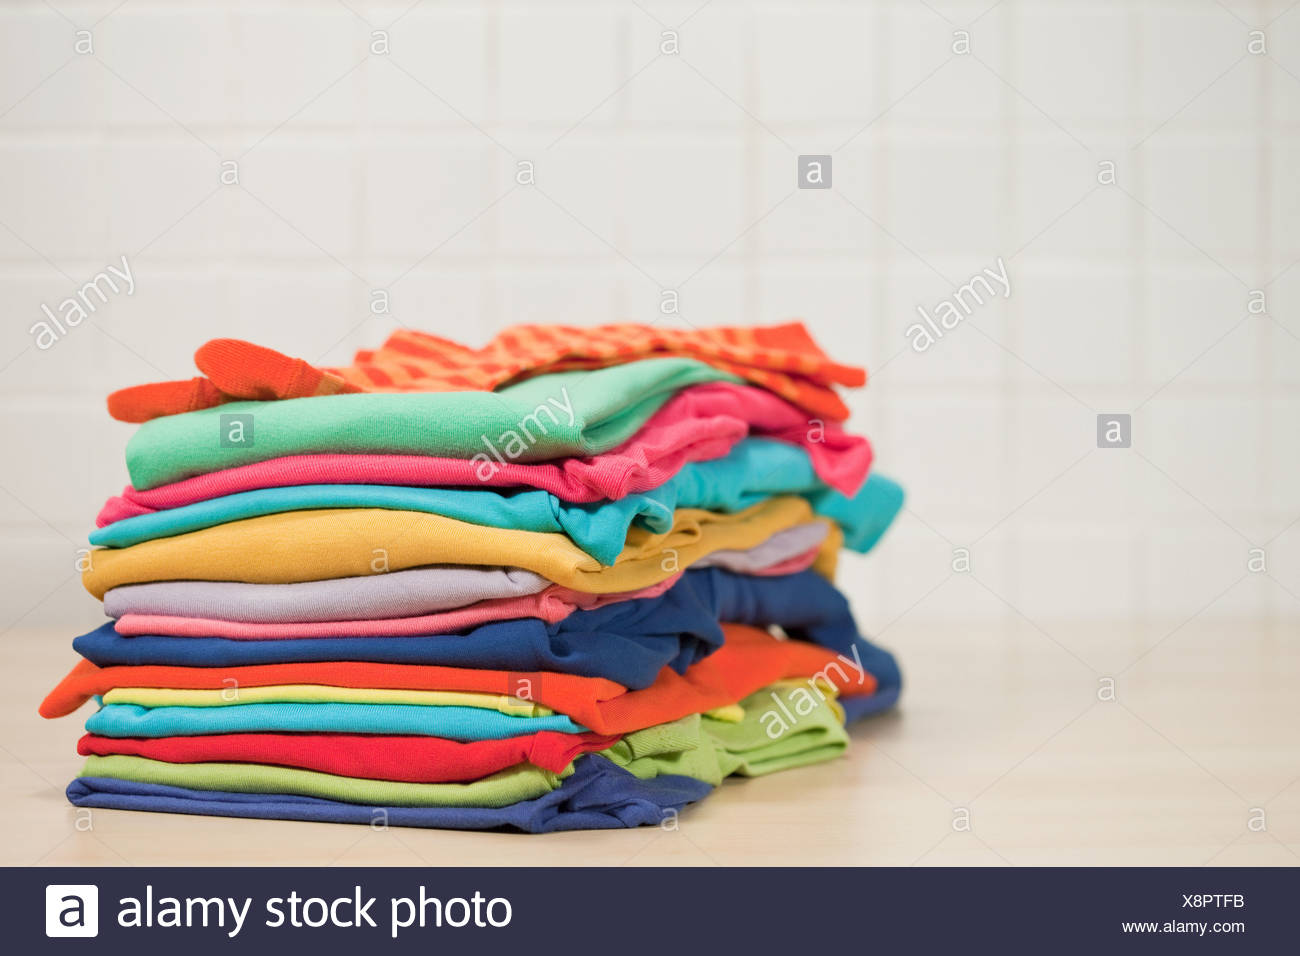 Pile of clean laundry - Stock Image